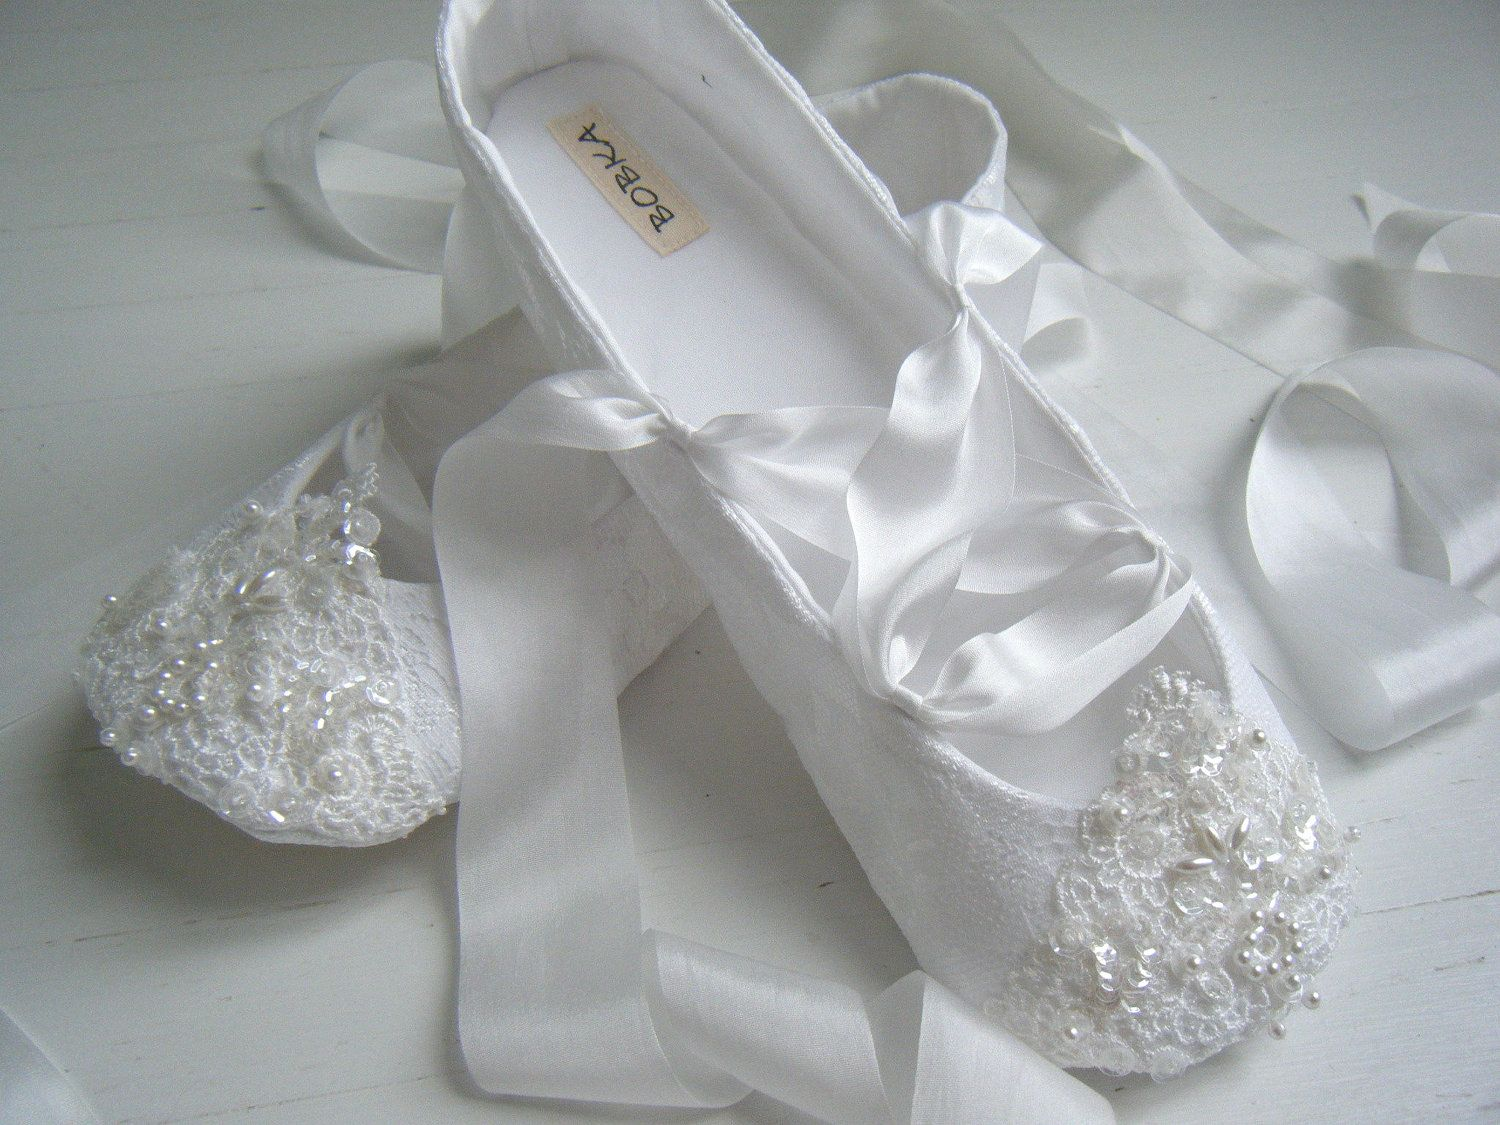 Bridal Ballet Flats White Fairytale Shoes Wedding Women S Bobka By Bobkababy